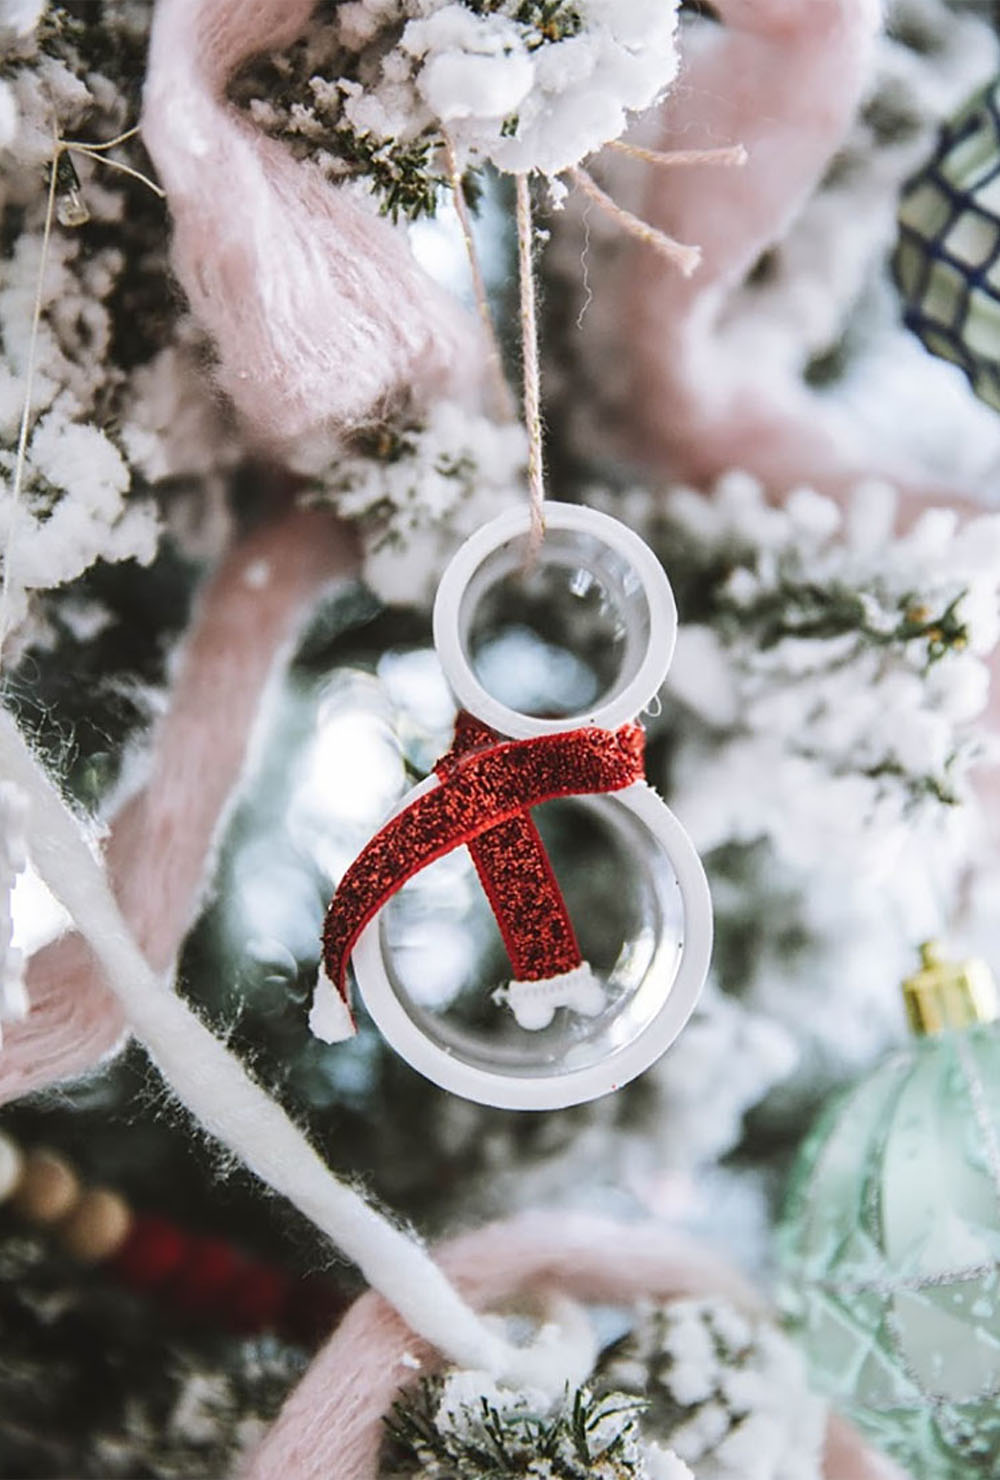 An ornament hanging on a Christmas tree with pink yarn.